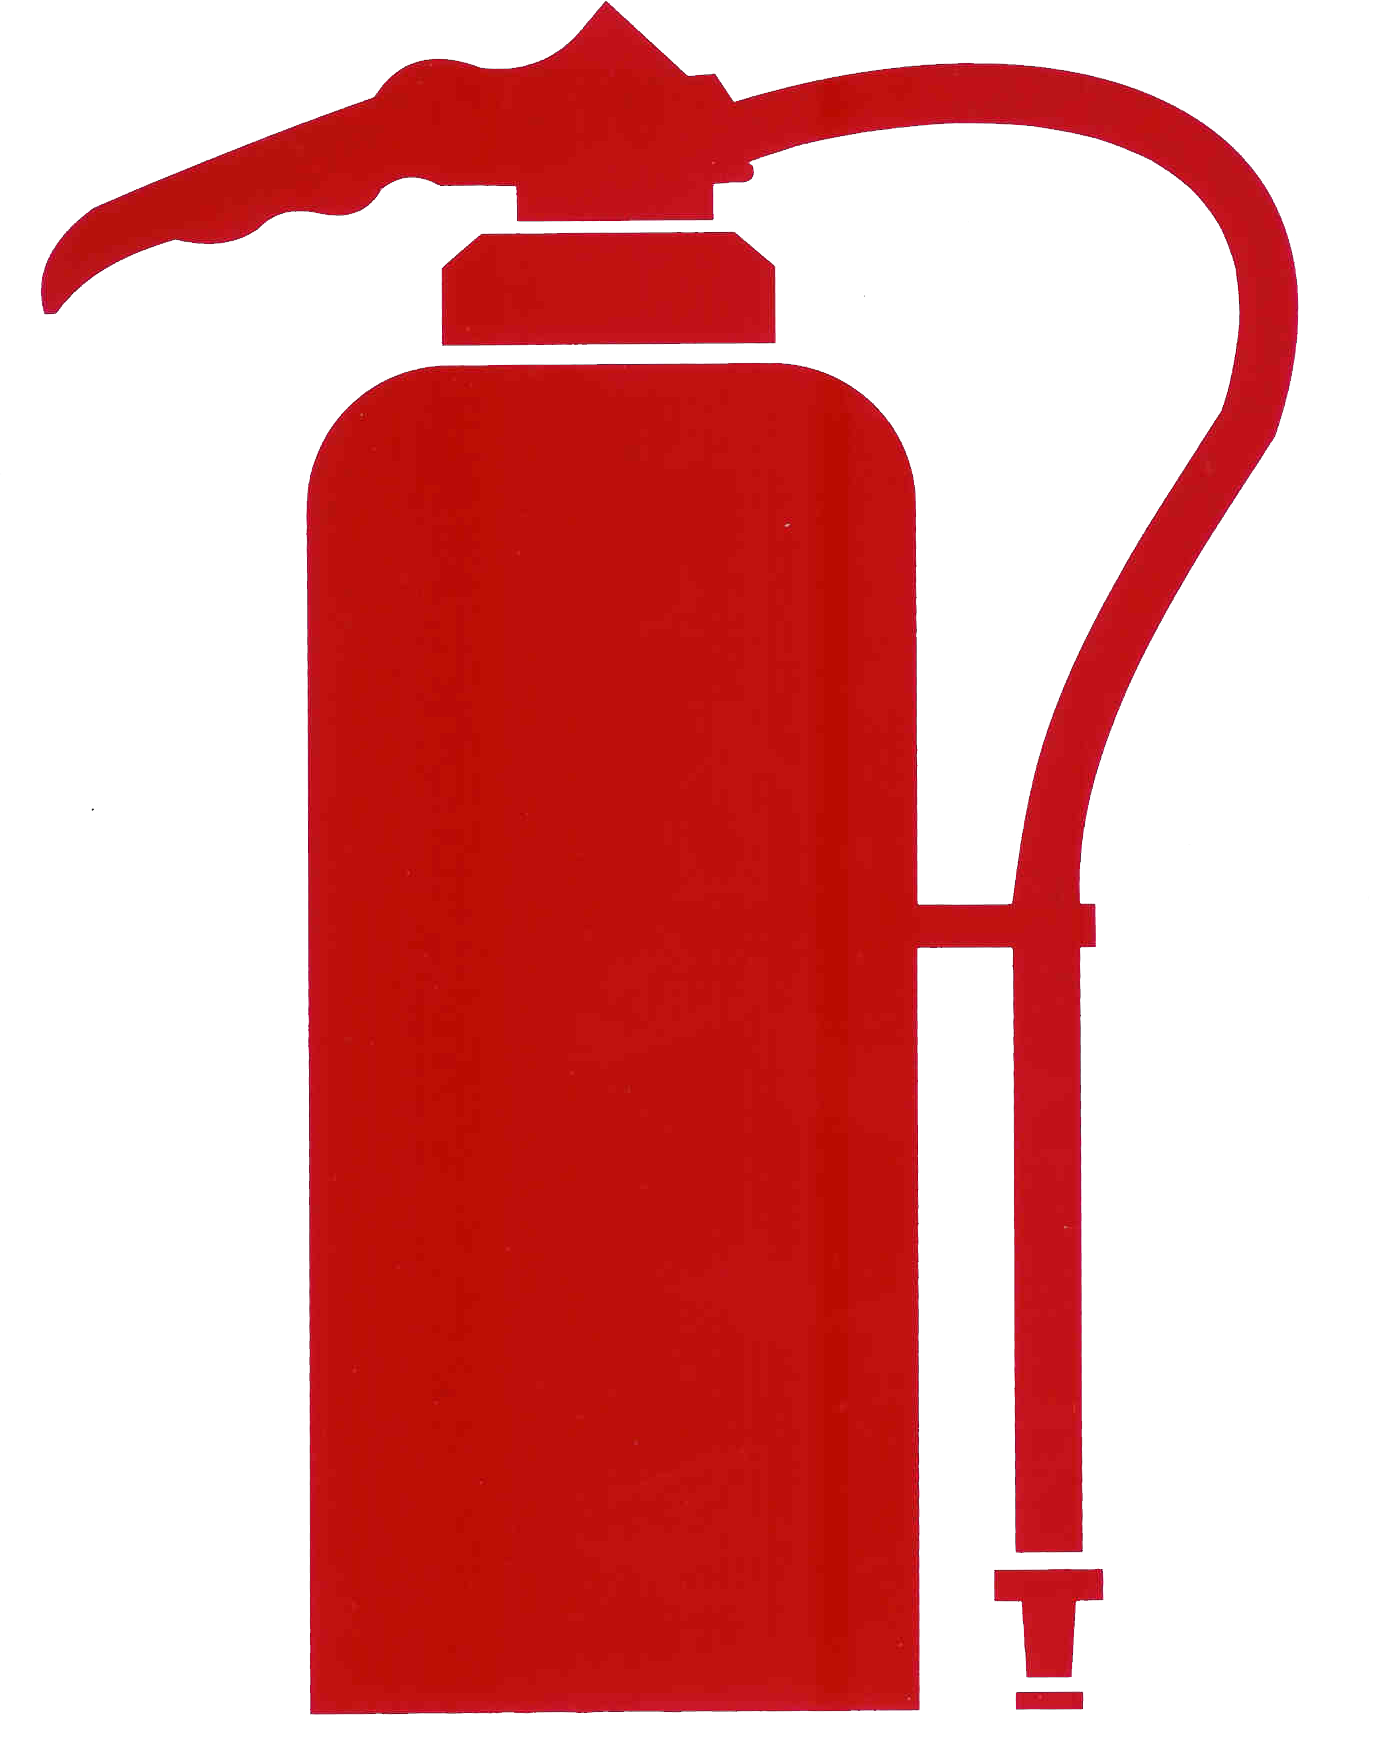 Extinguisher Png Image Extinguisher Fire Protection Fire